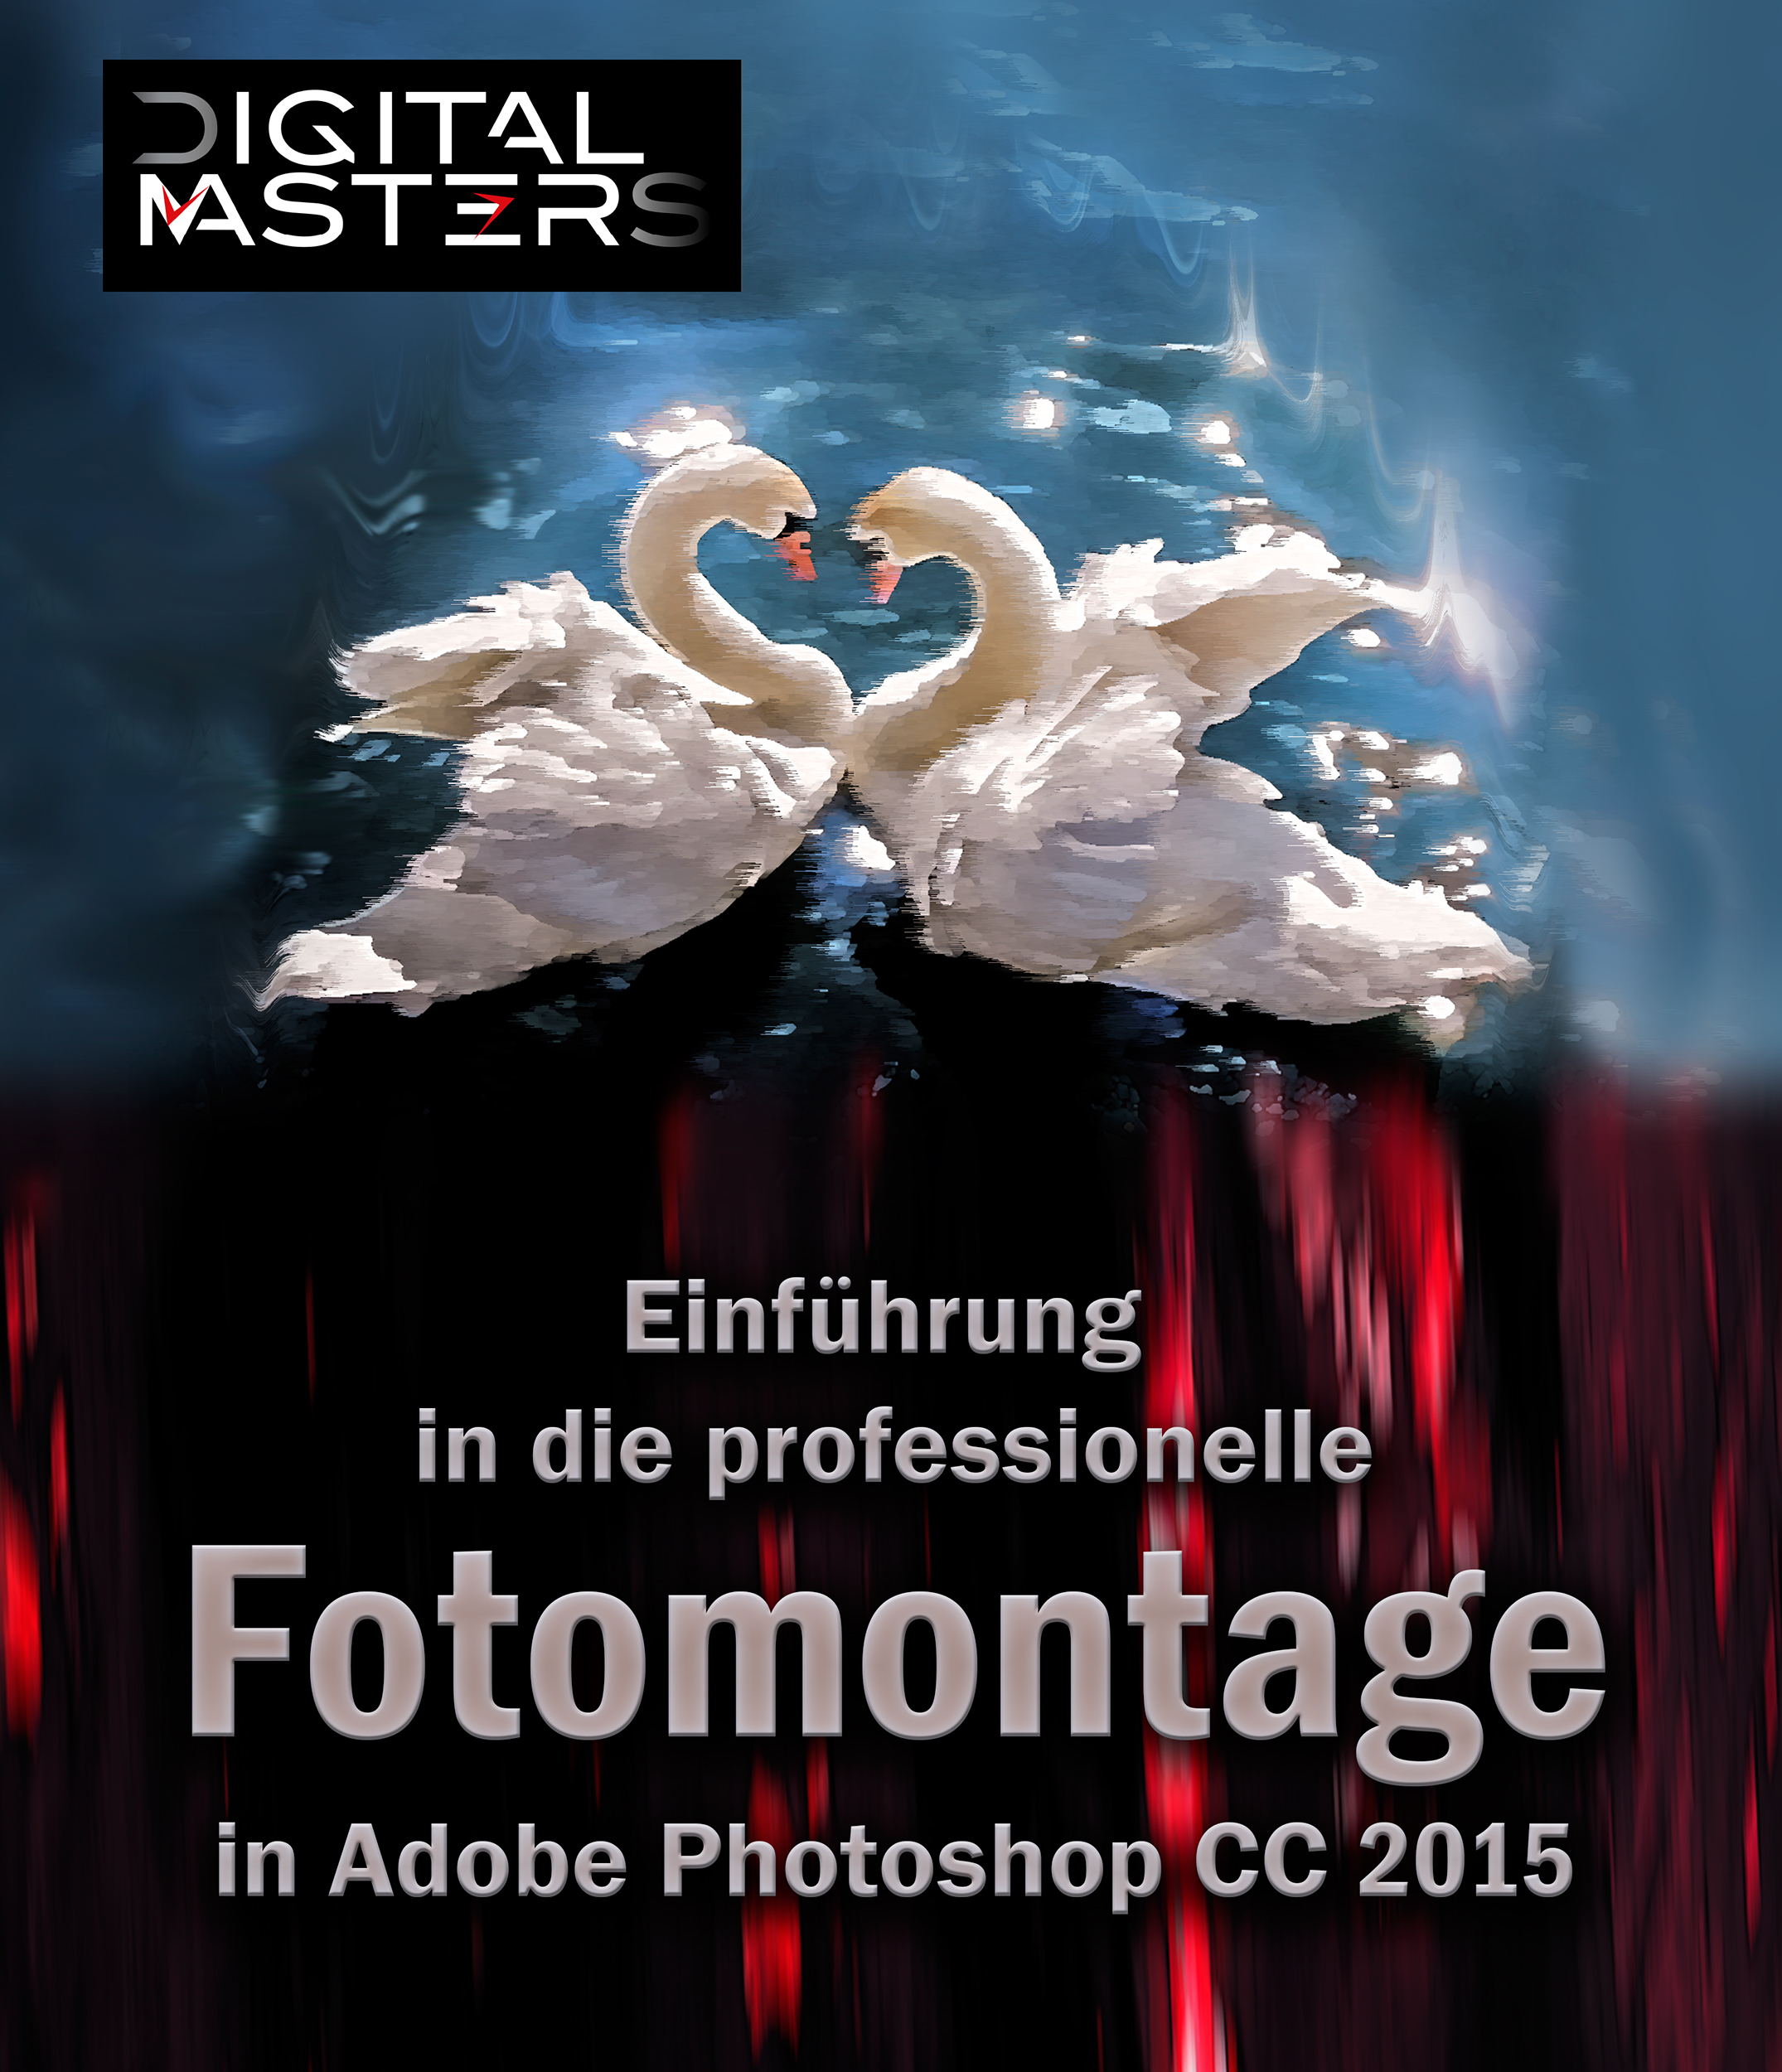 Einführung in die professionelle Fotomontage in Adobe Photoshop CC